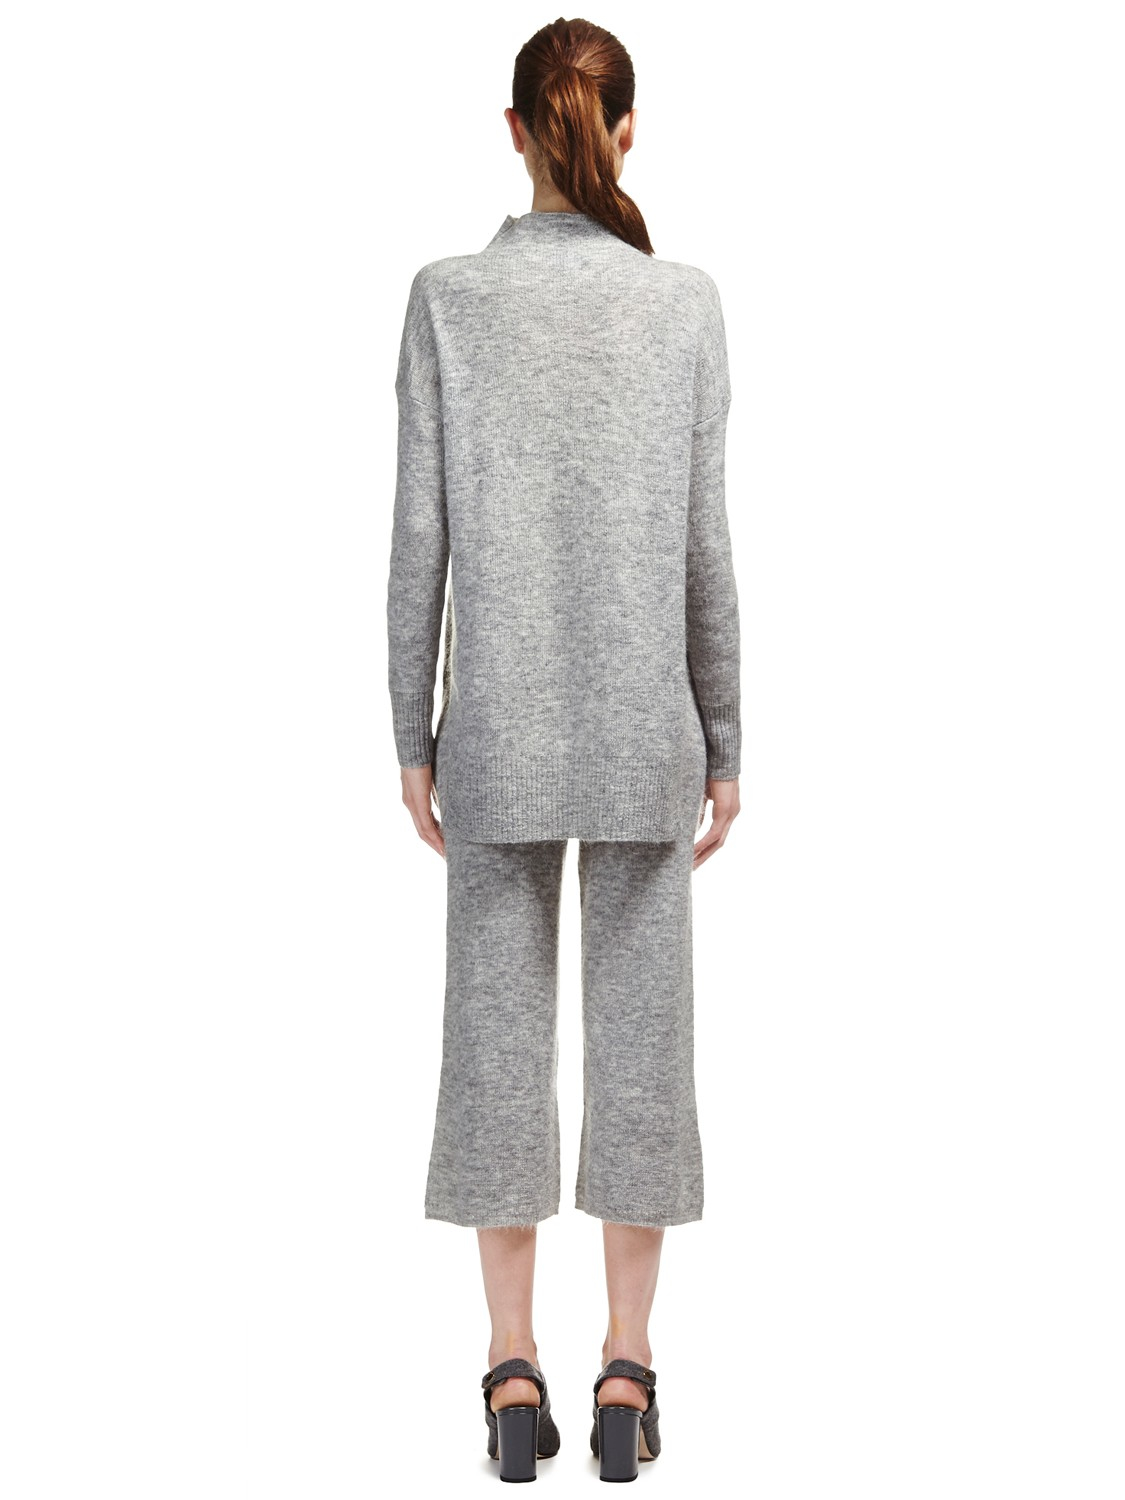 c0ffadc4b5e Whistles Mohair Blend Funnel Neck Knit Jumper in Gray - Lyst